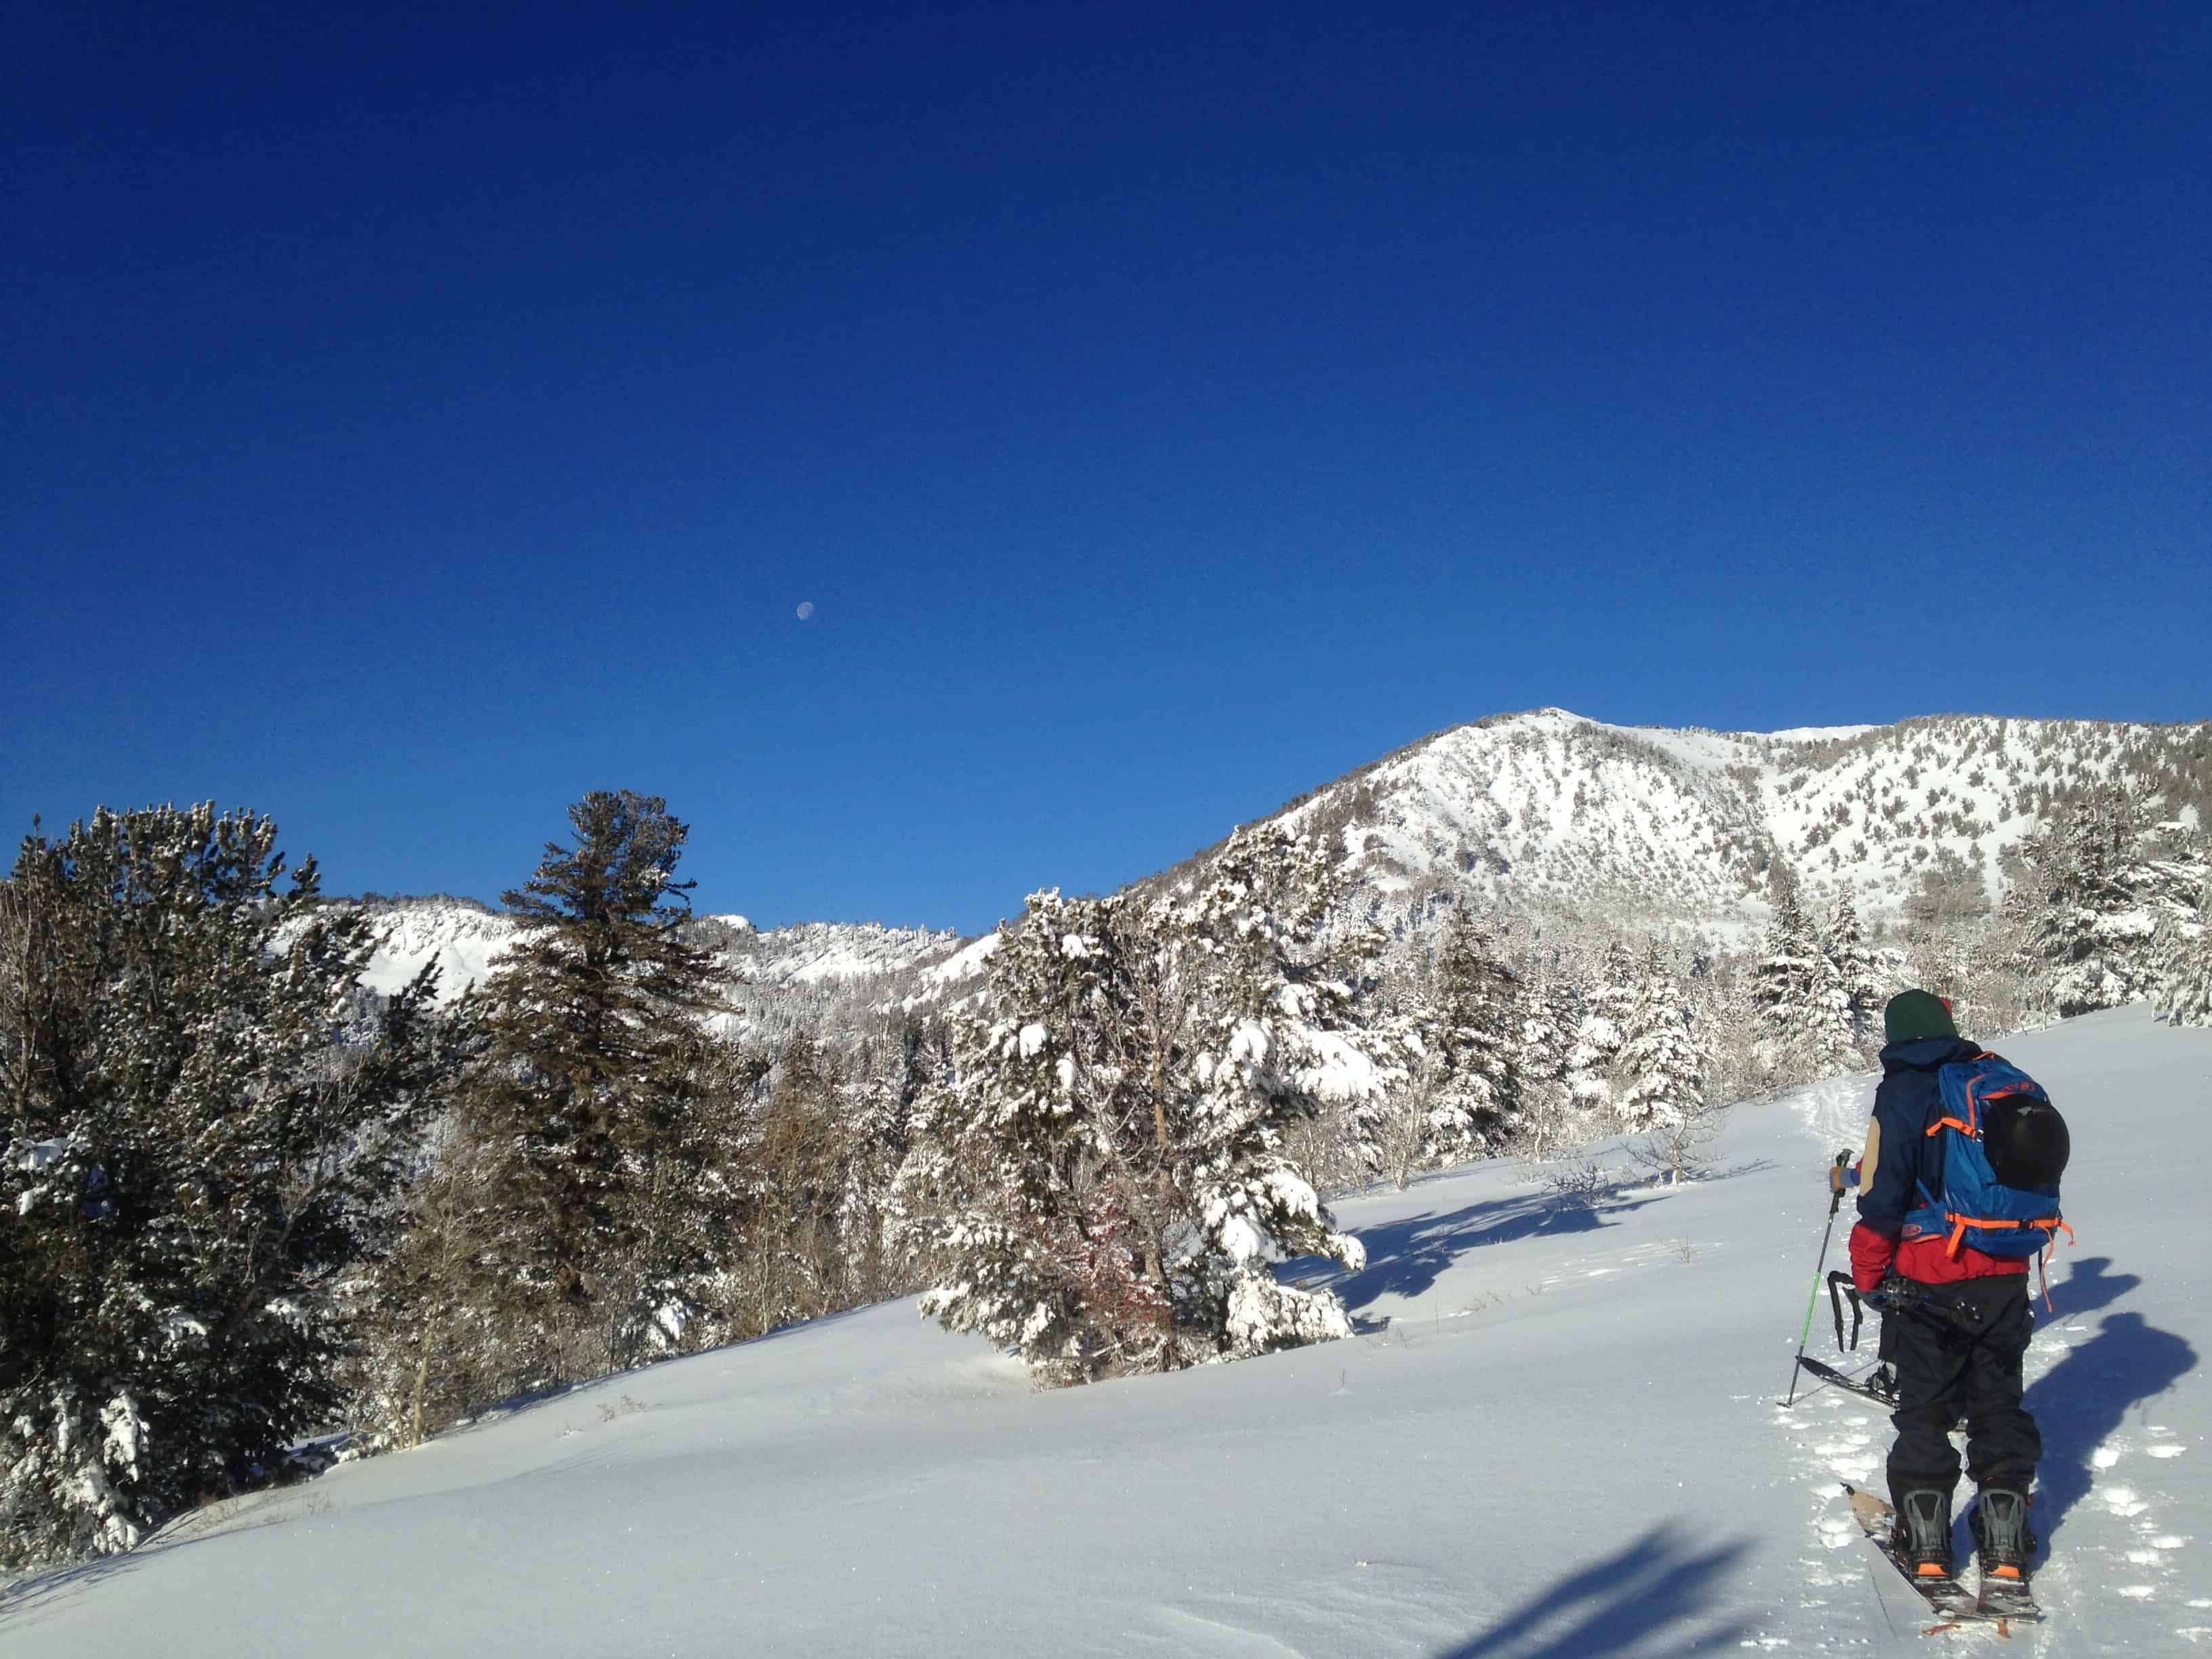 Tahoe Mountain Sports was founded in by David Polivy, Rick Papaleo and Jeremiah Skirvin in Truckee, California. An ecommerce operation from the start, TMS operated solely online for its first three years, sprouting a loyal clientele from the trio's trademark customer /5(48).